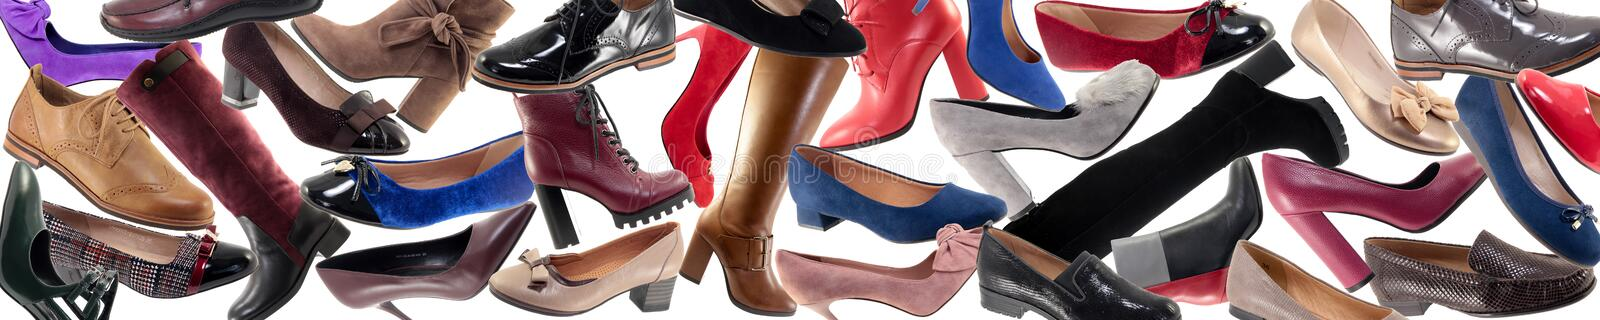 Many different shoes, header. Banner royalty free stock images